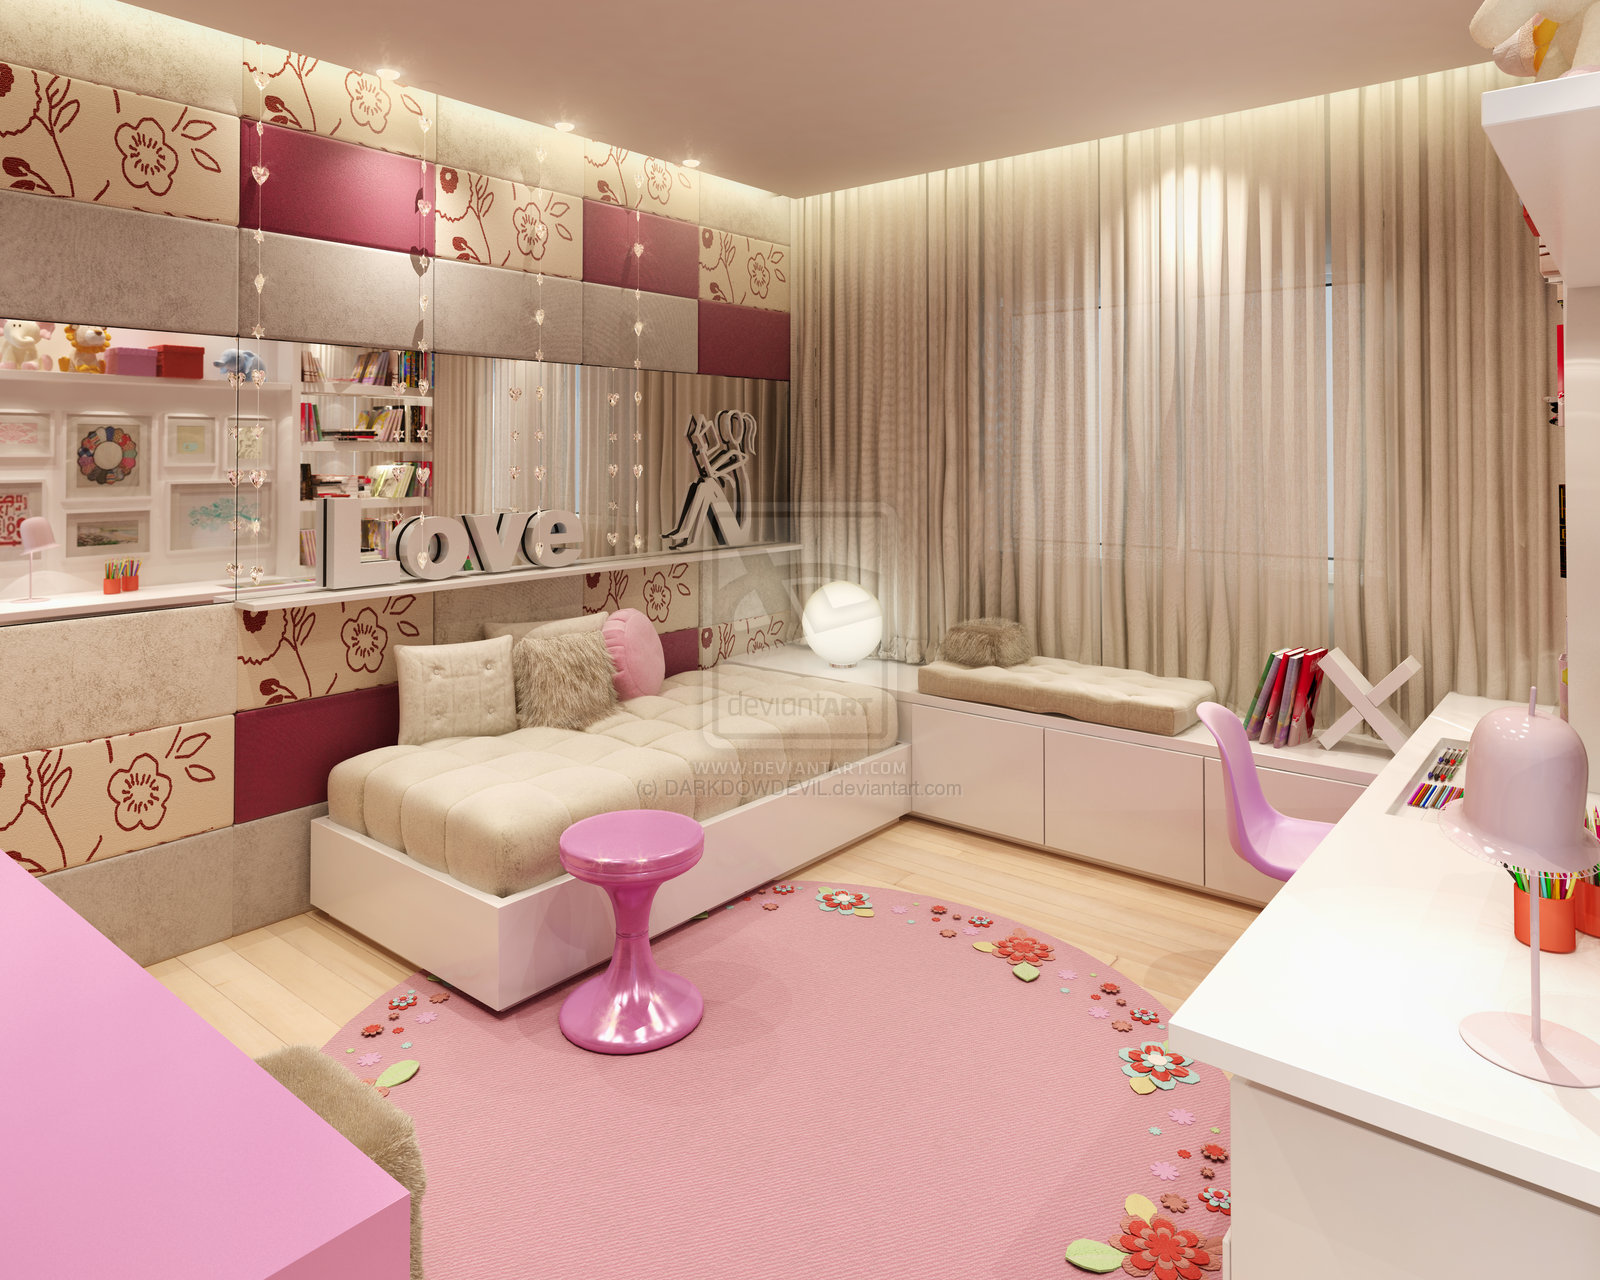 Girly bedroom design ideas azee for L bedroom designs